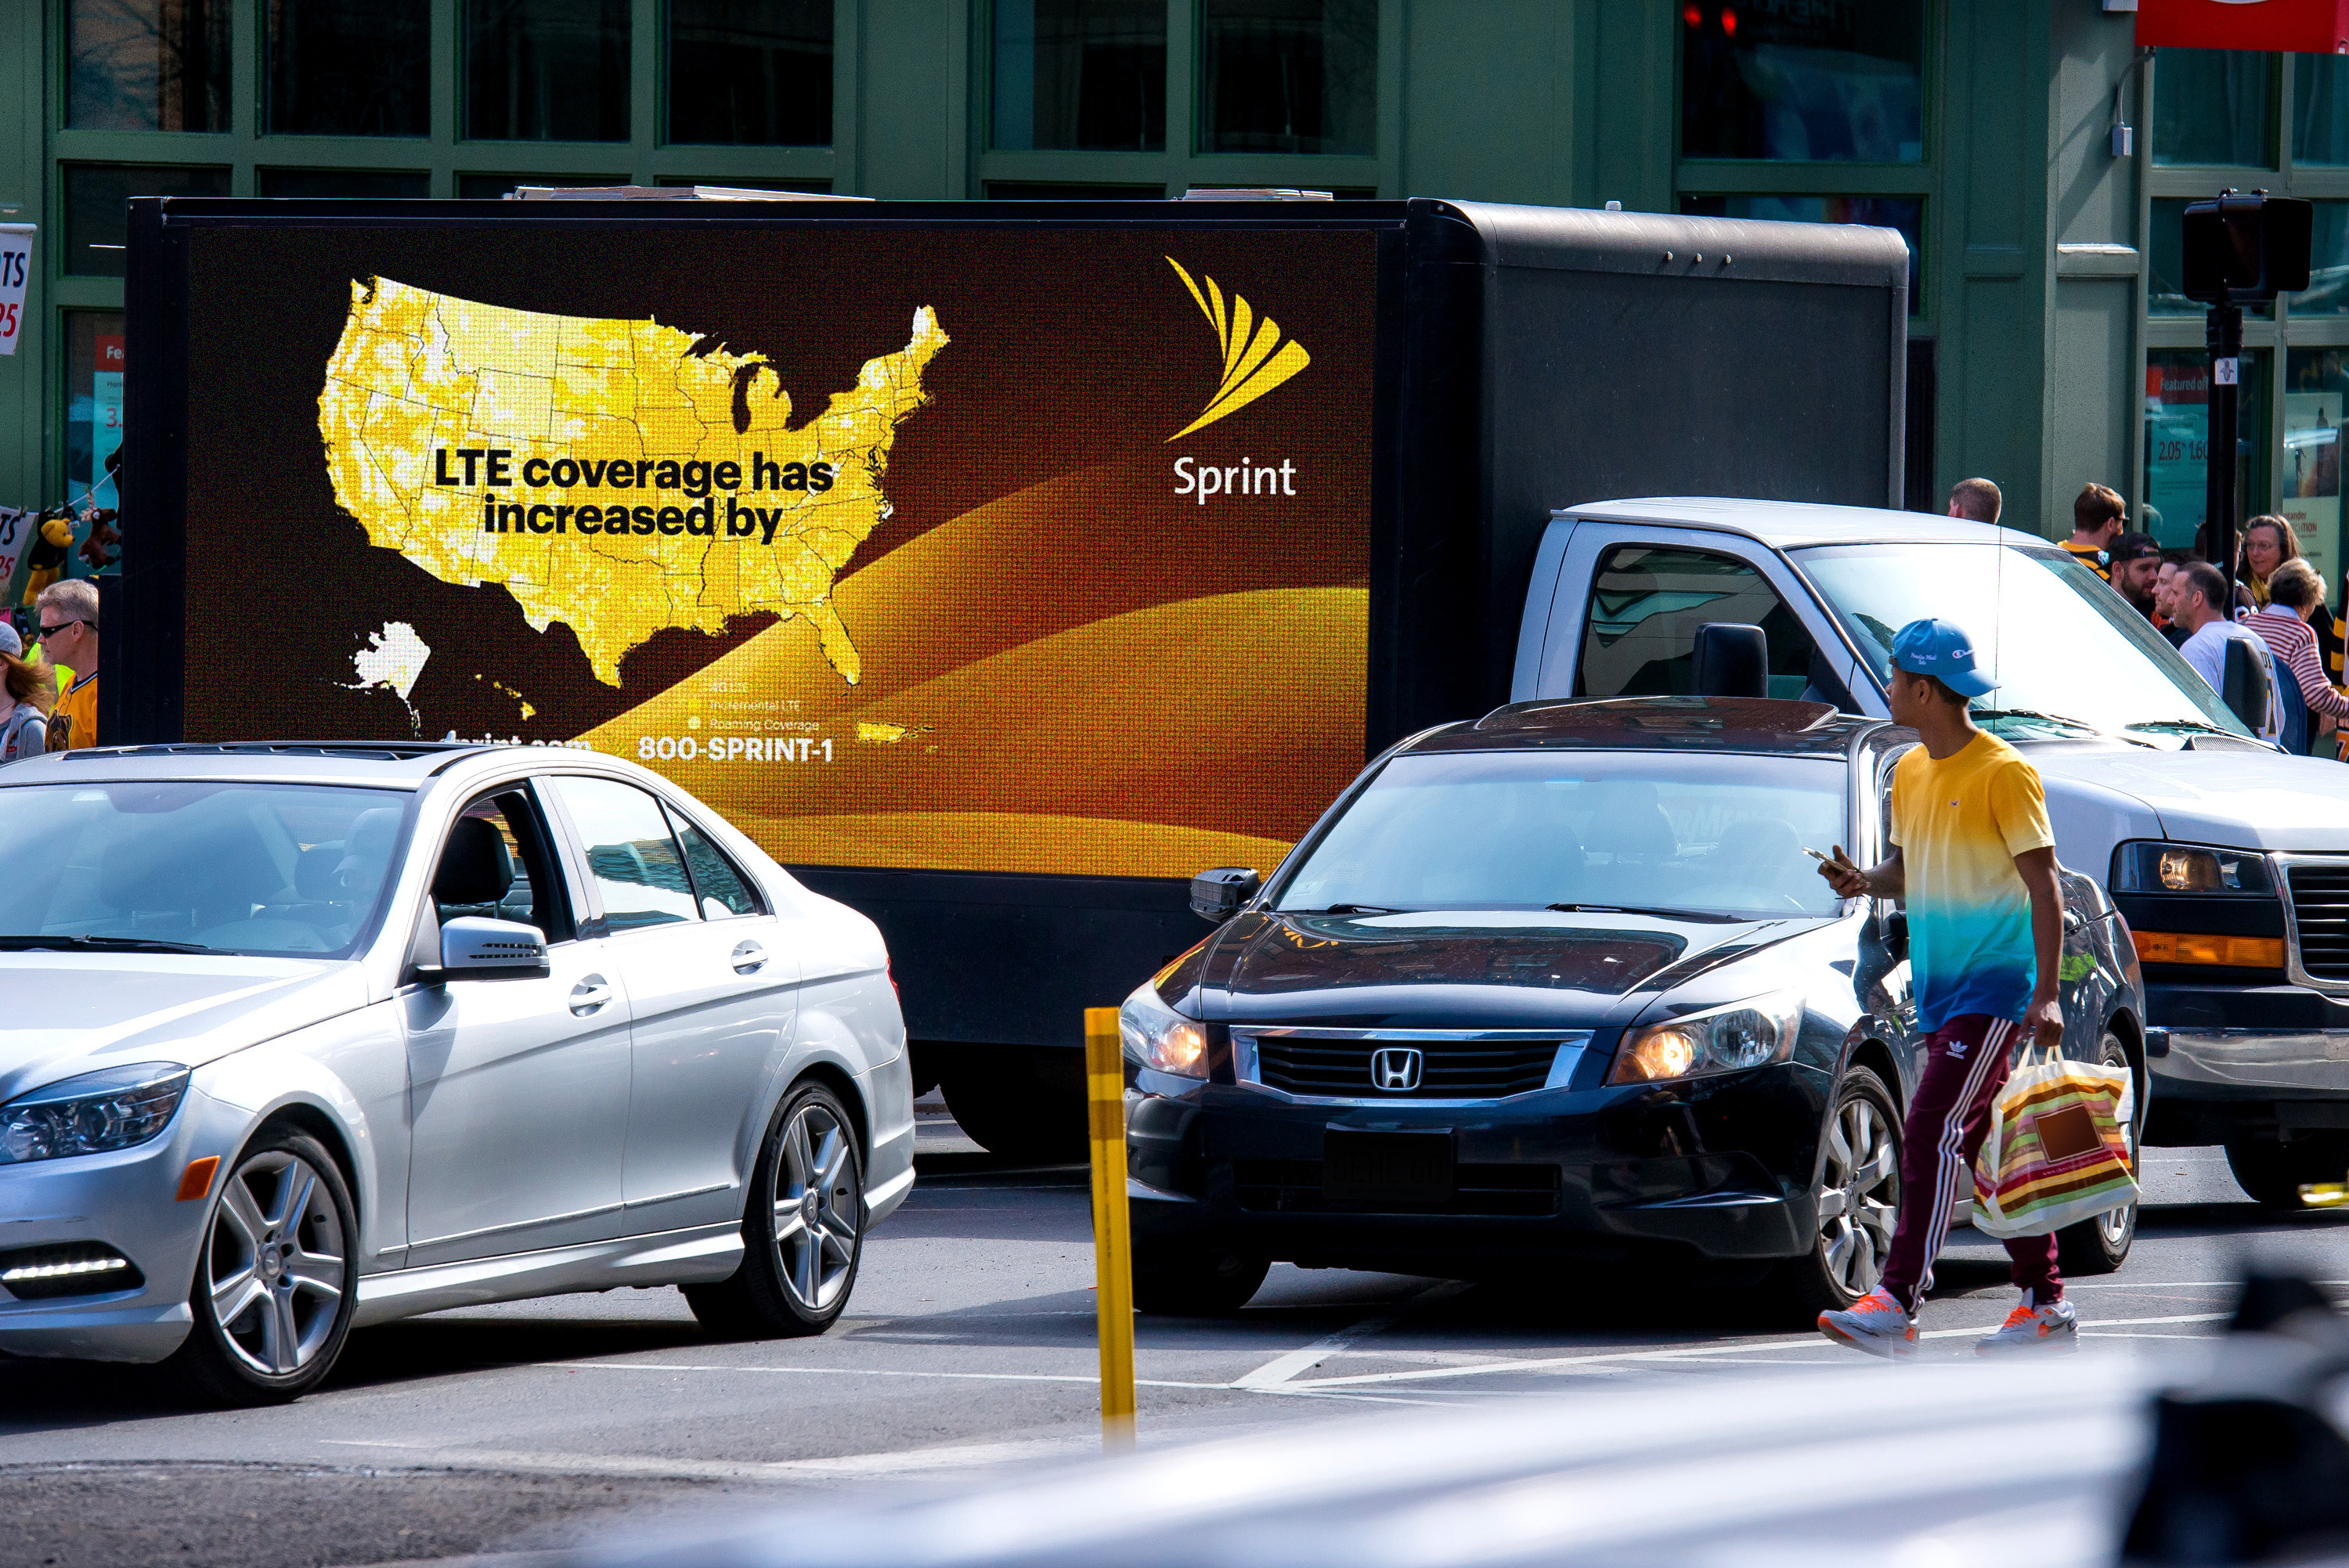 Sprint Digital Truck Advertising